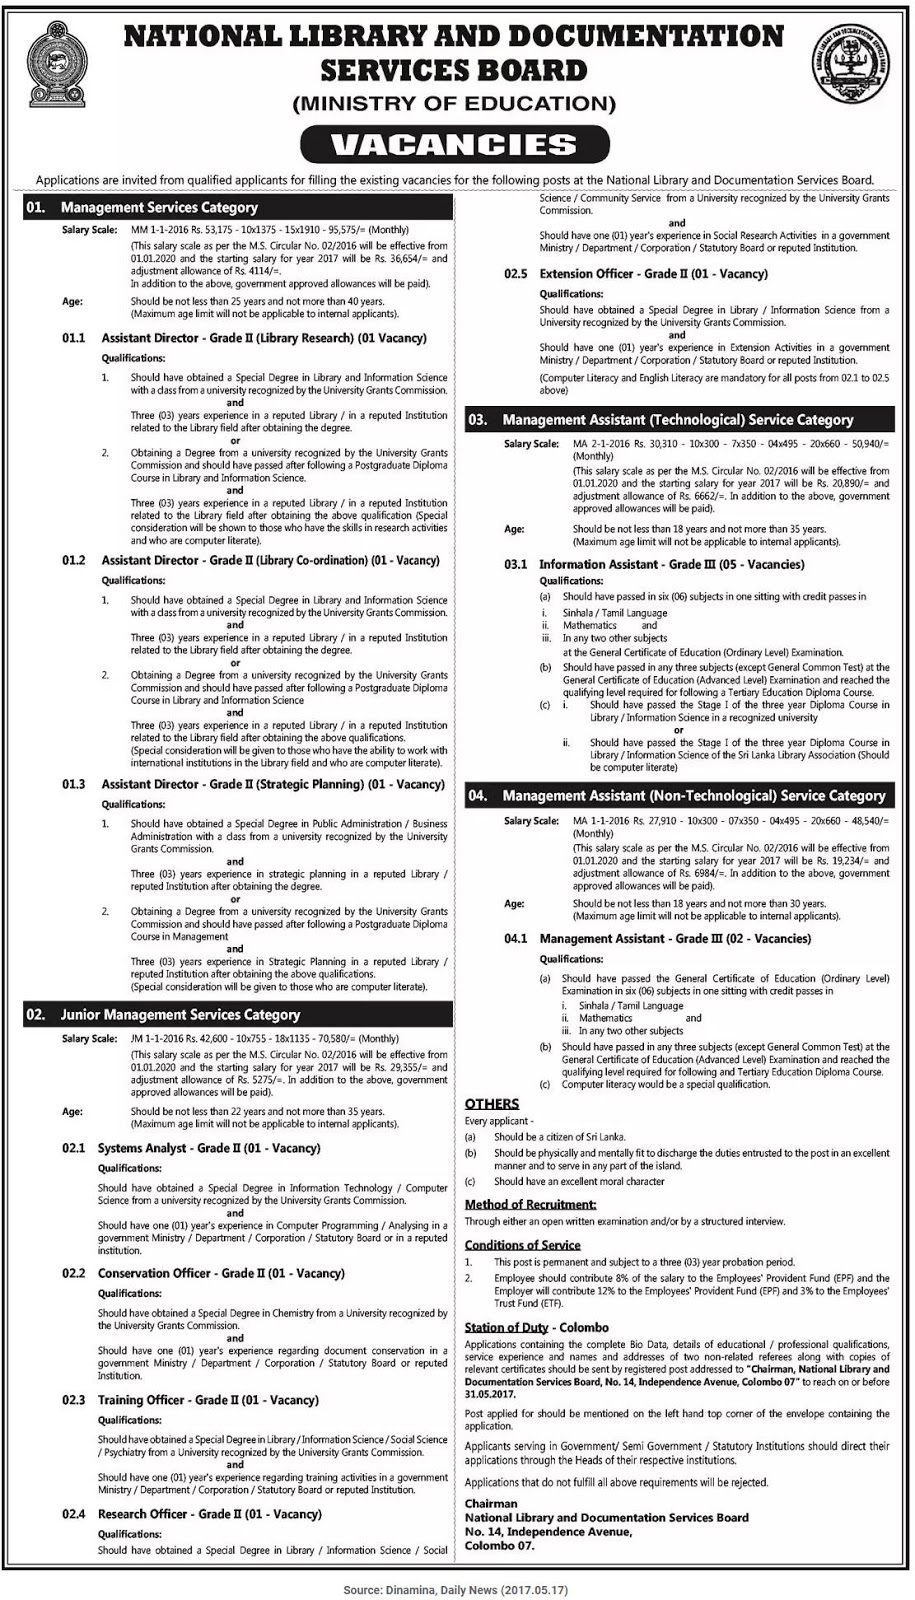 National Library & Documentation Services Board Vacancies